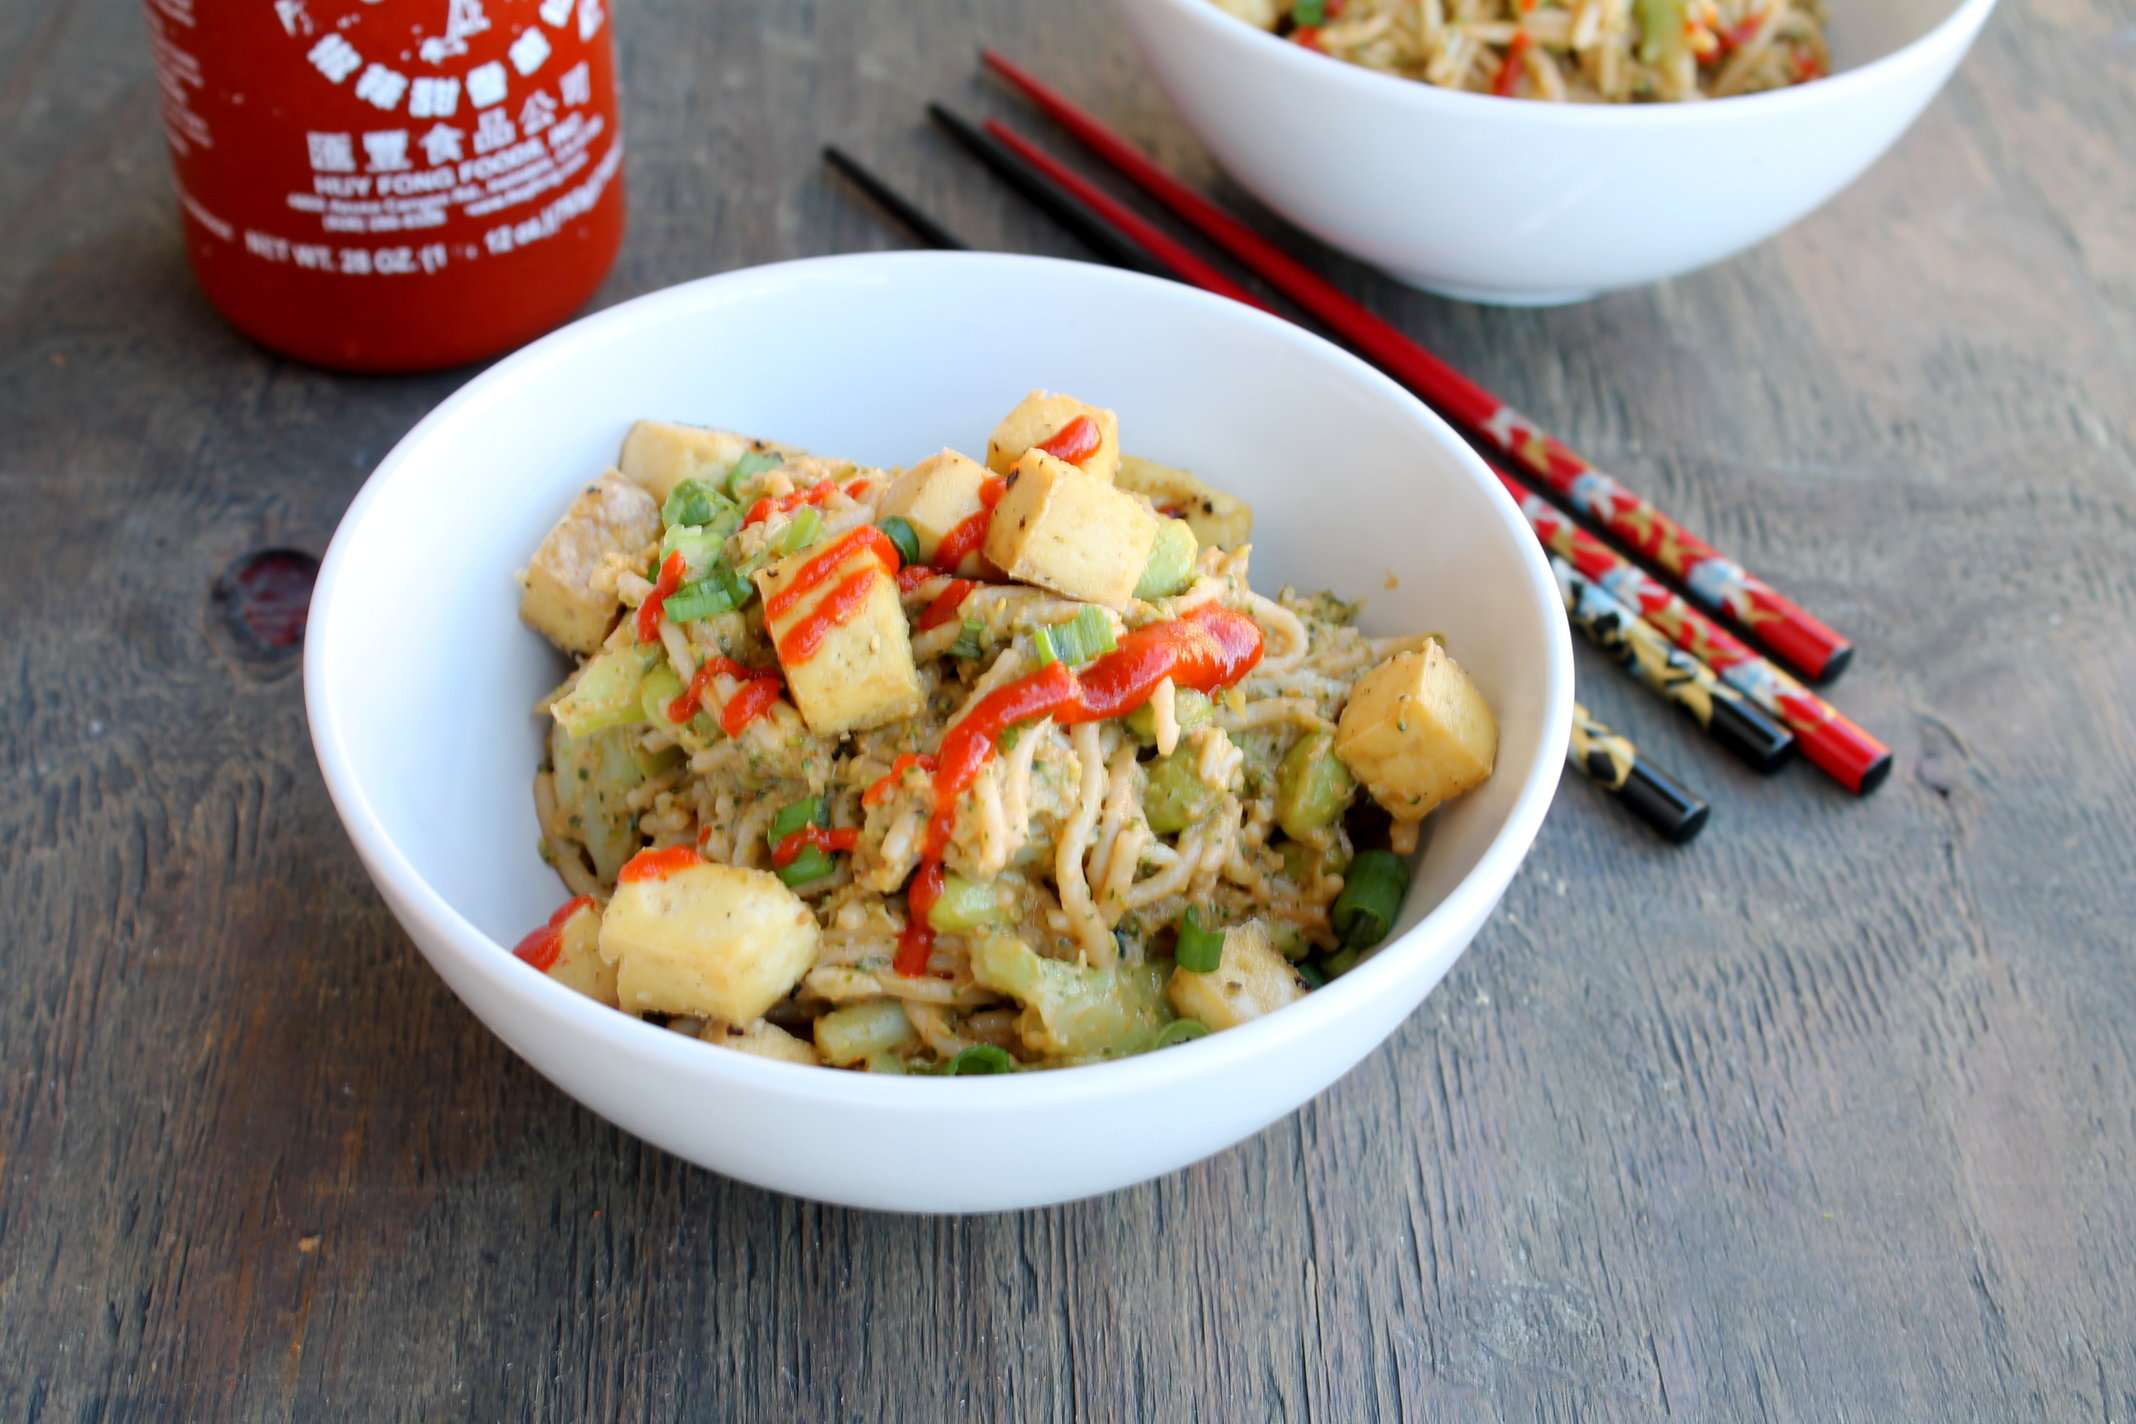 Peanut Butter Sriracha Noodles is perfect weeknight meal that is one pot, vegan and gluten-free friendly.